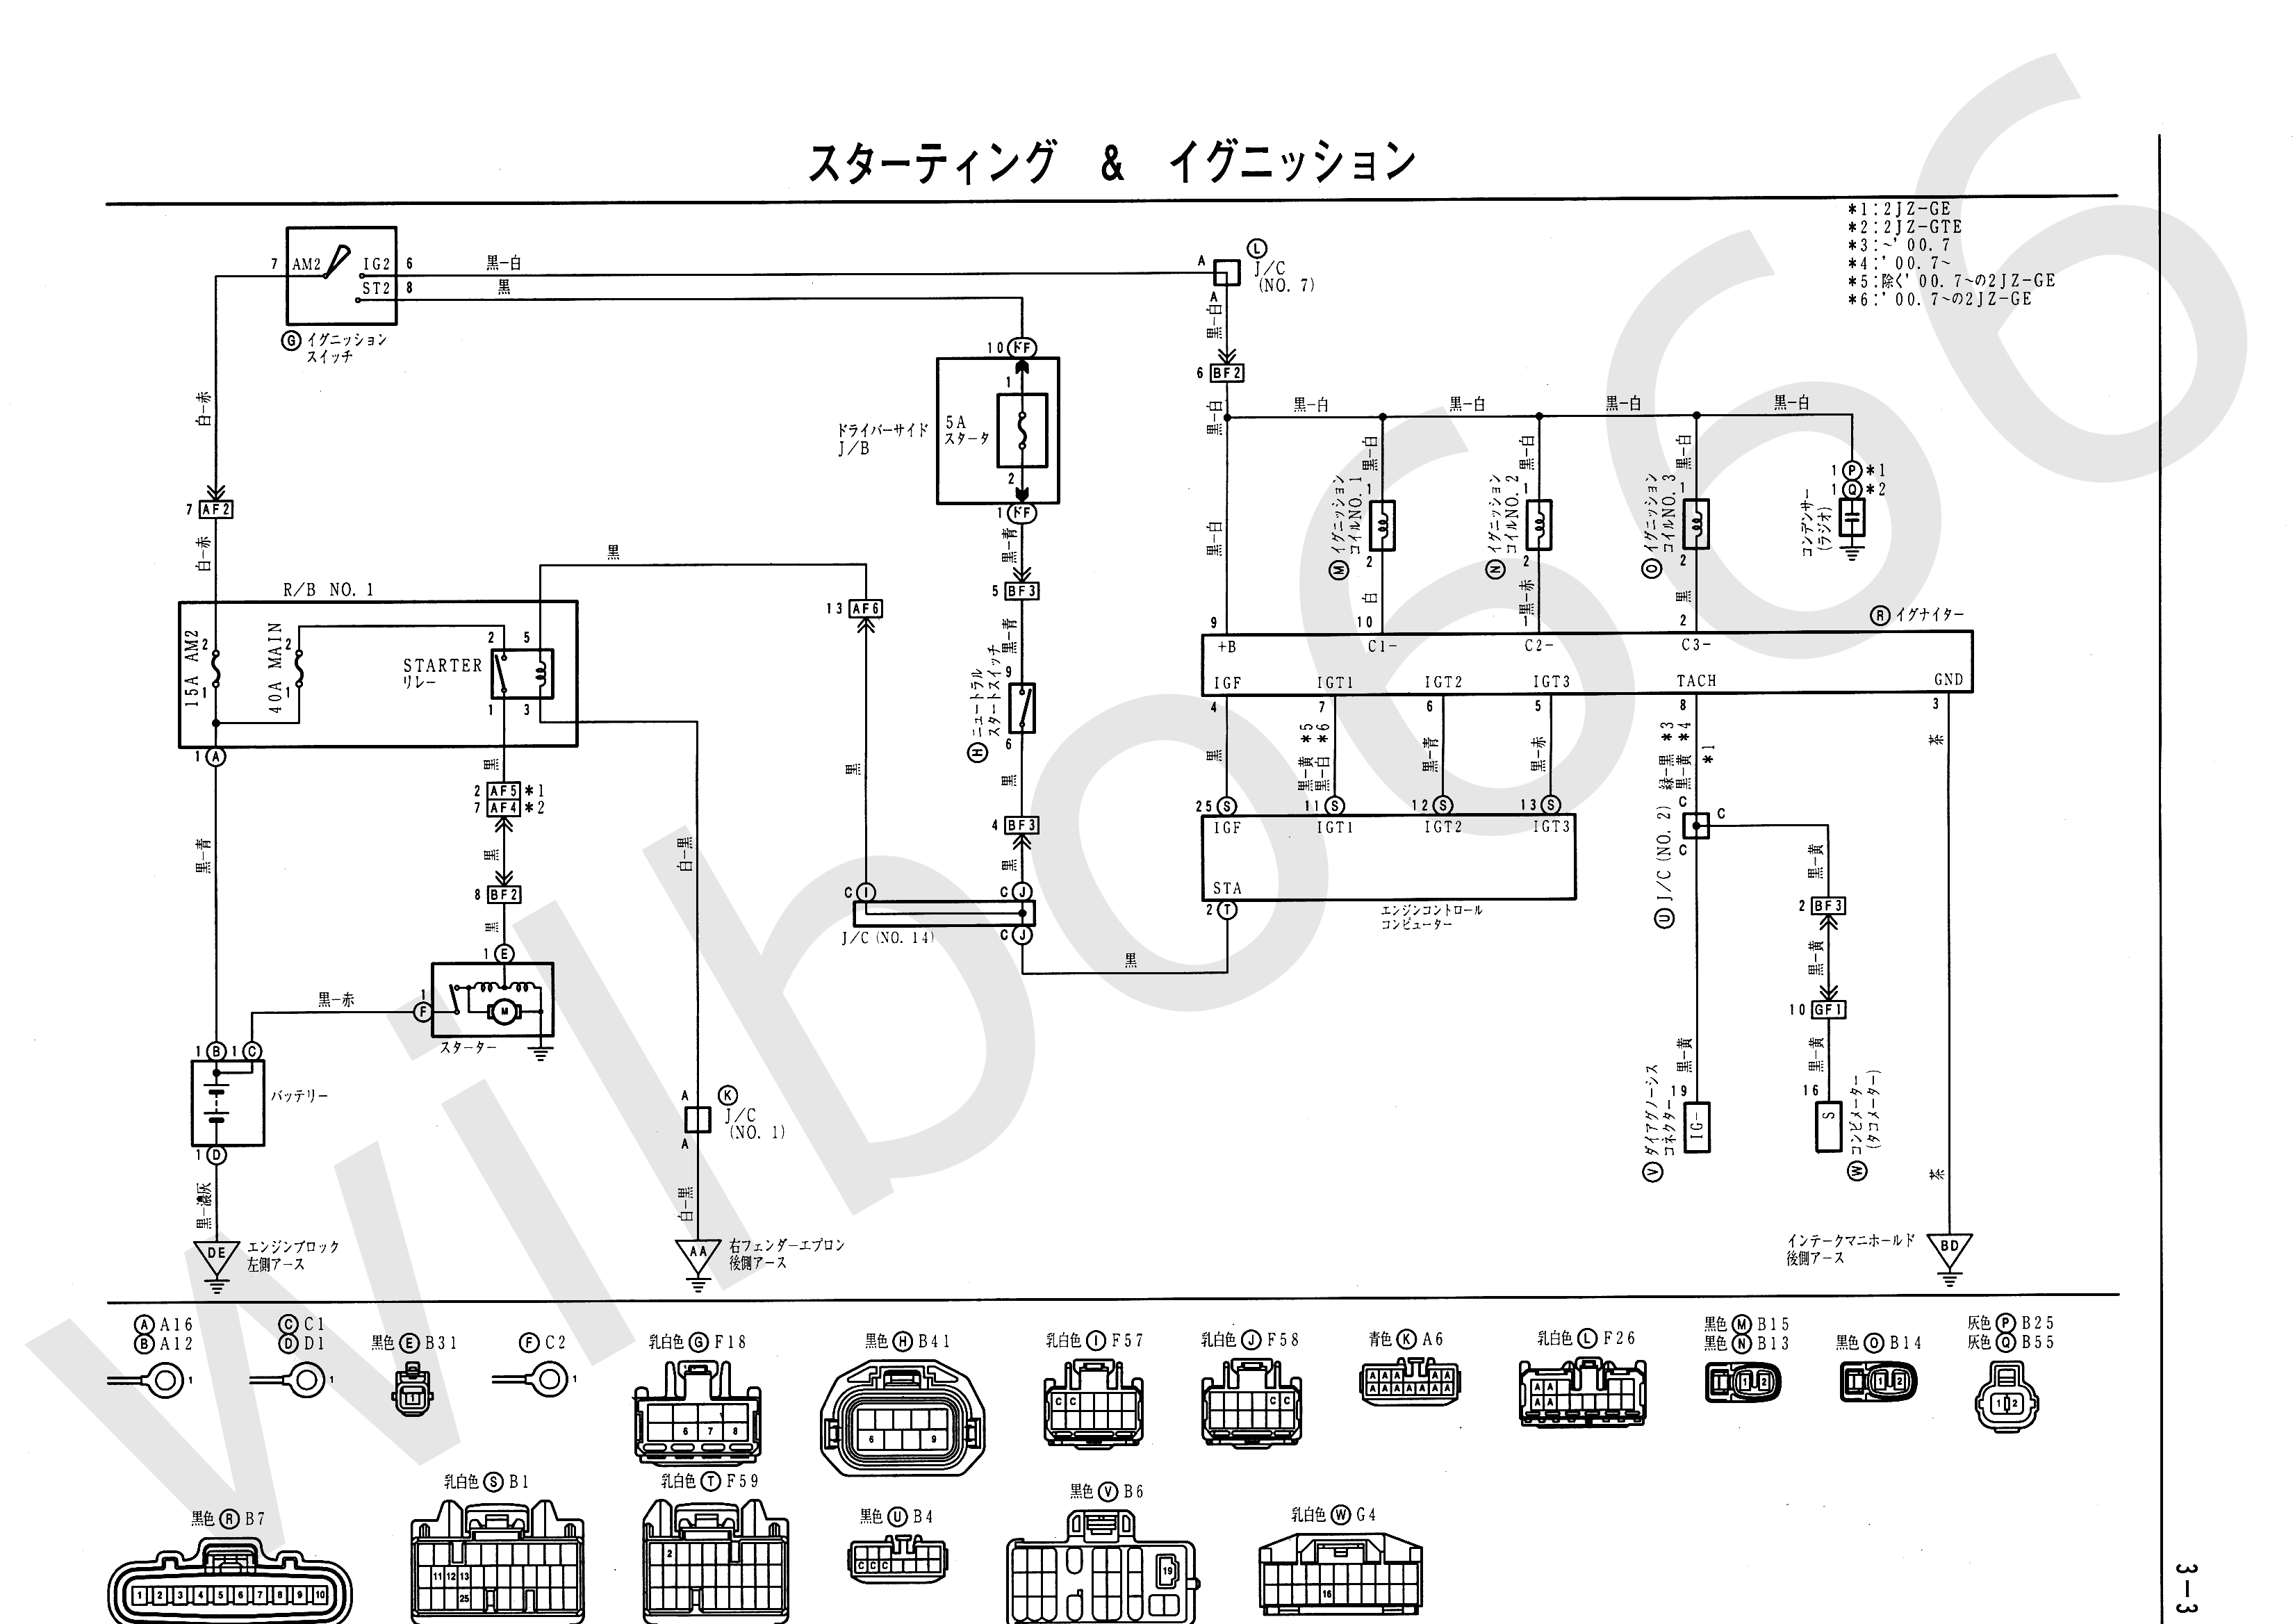 2jz alternator wiring diagram 2jz wiring diagrams alternator wiring diagram jzs161%20electrical%20wiring%20diagram%206748505%203 3